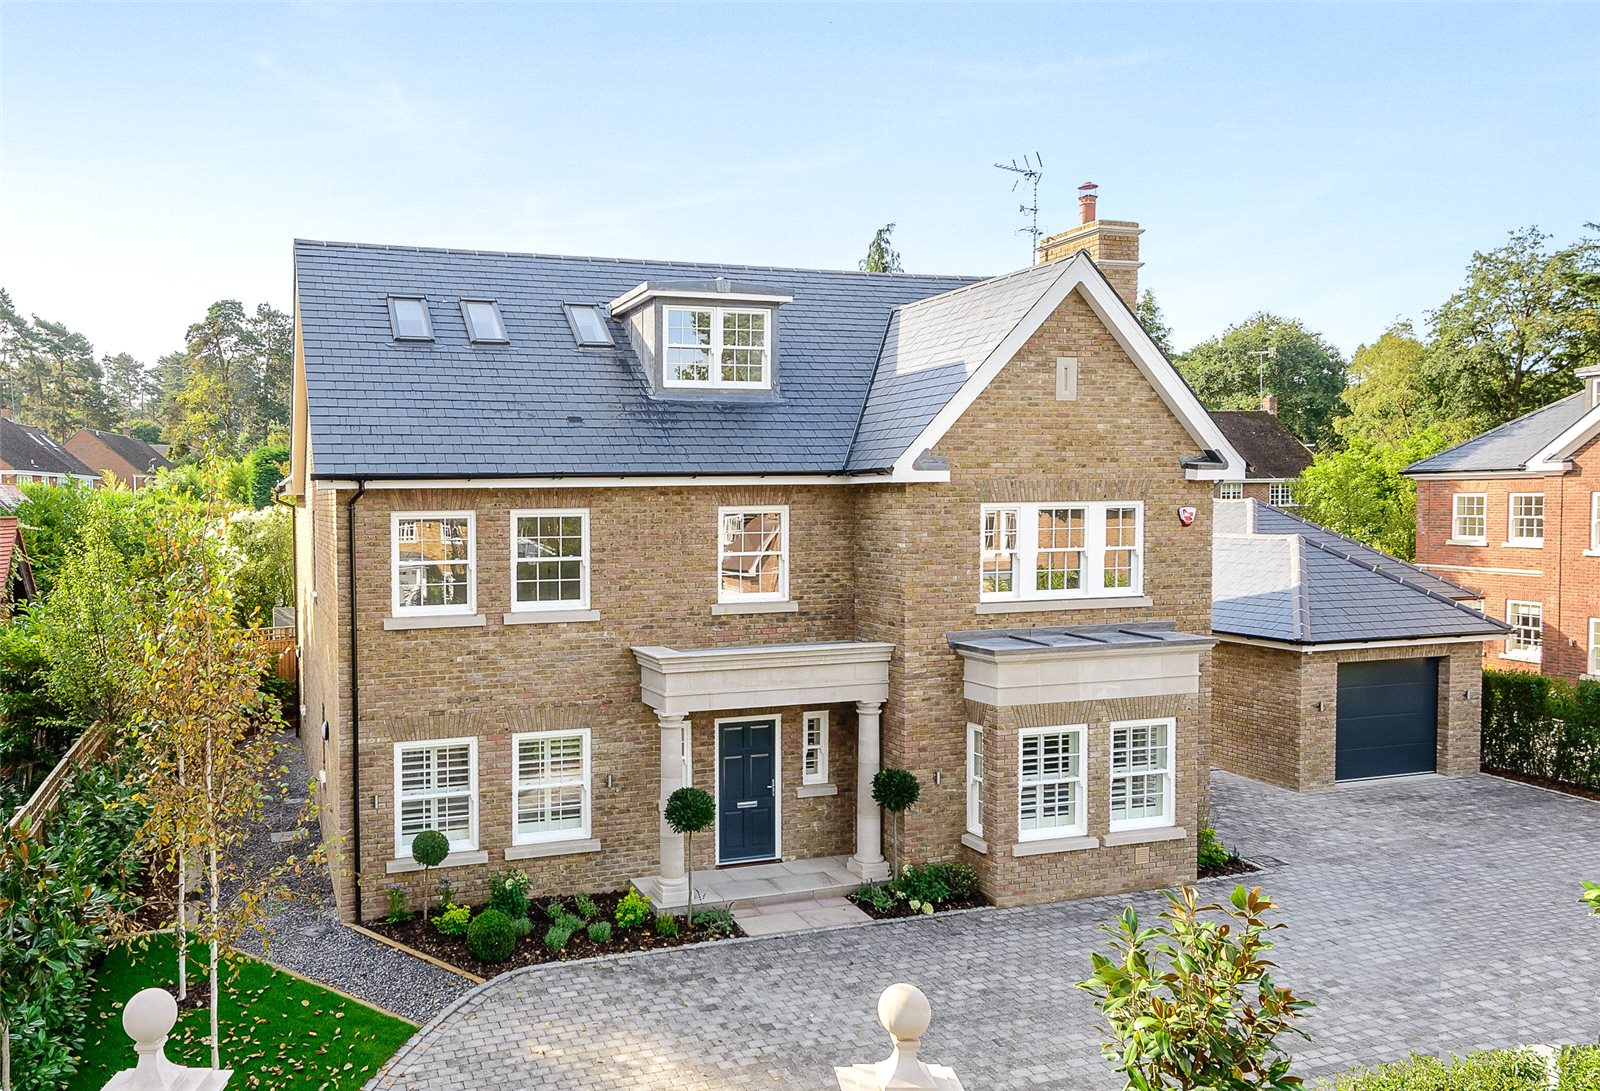 Additional photo for property listing at Whynstones Road, Ascot, Berkshire, SL5 Ascot, 英格兰